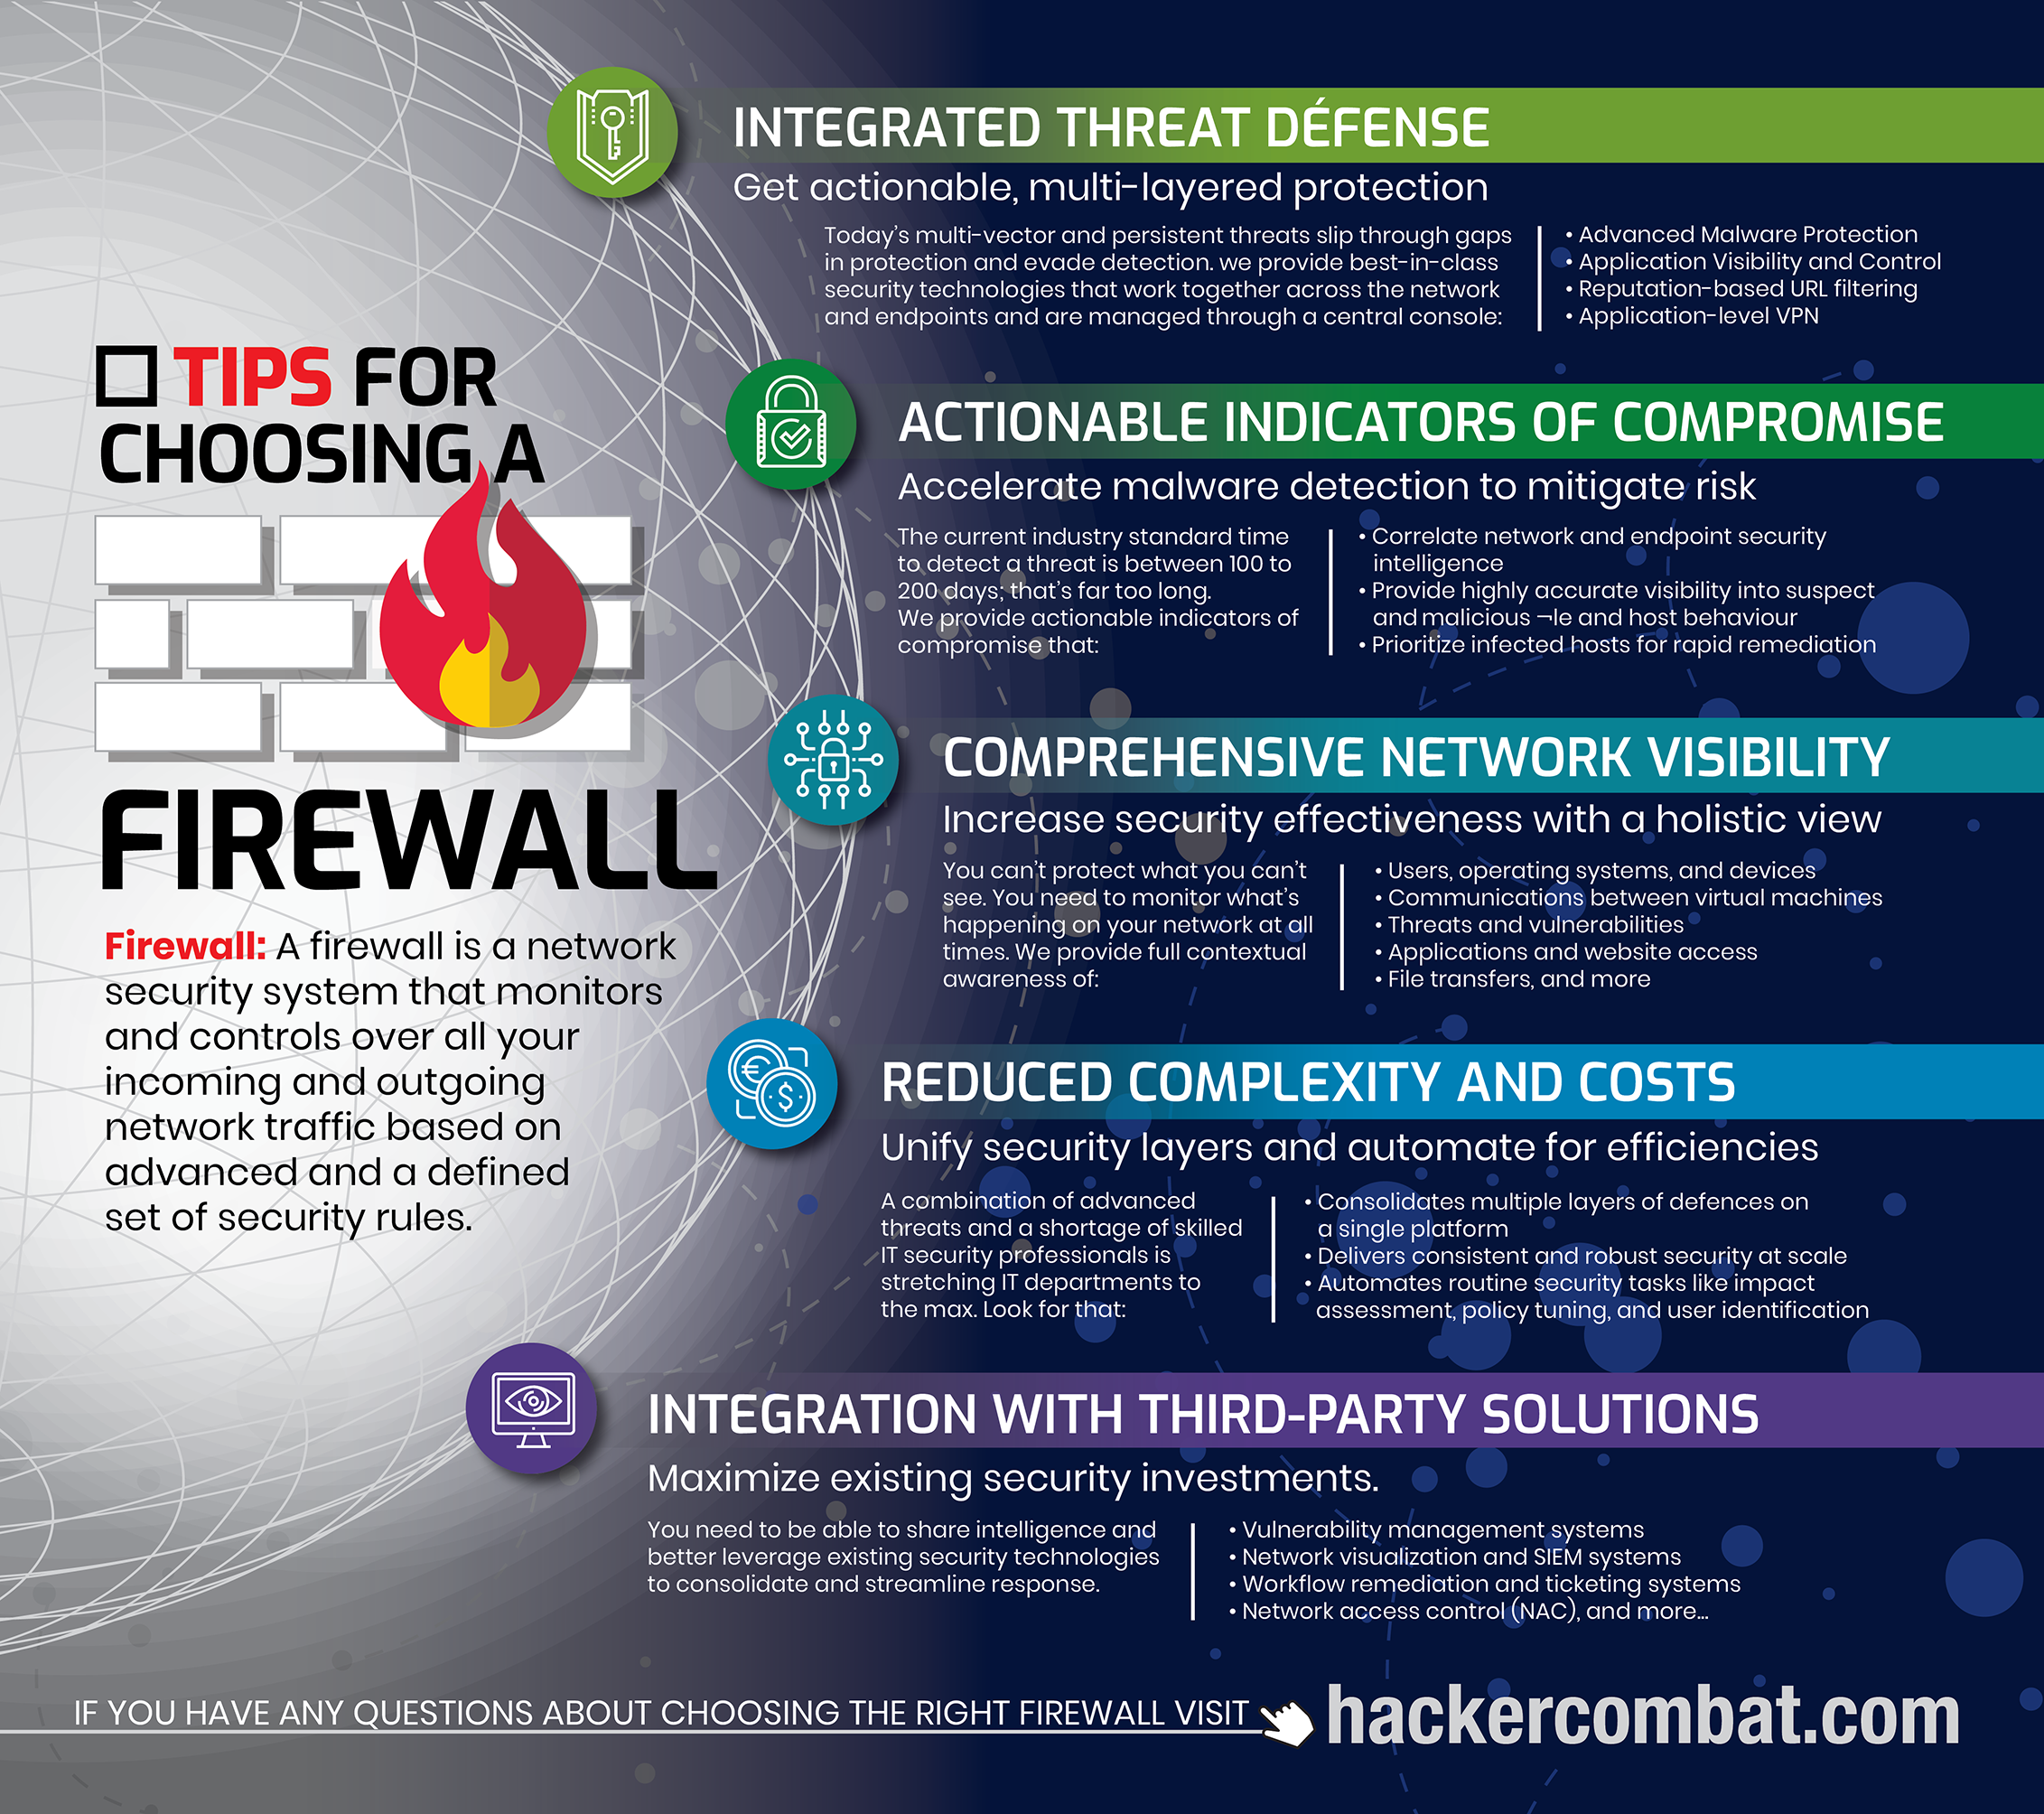 How to Choose a Firewall [Infographic]